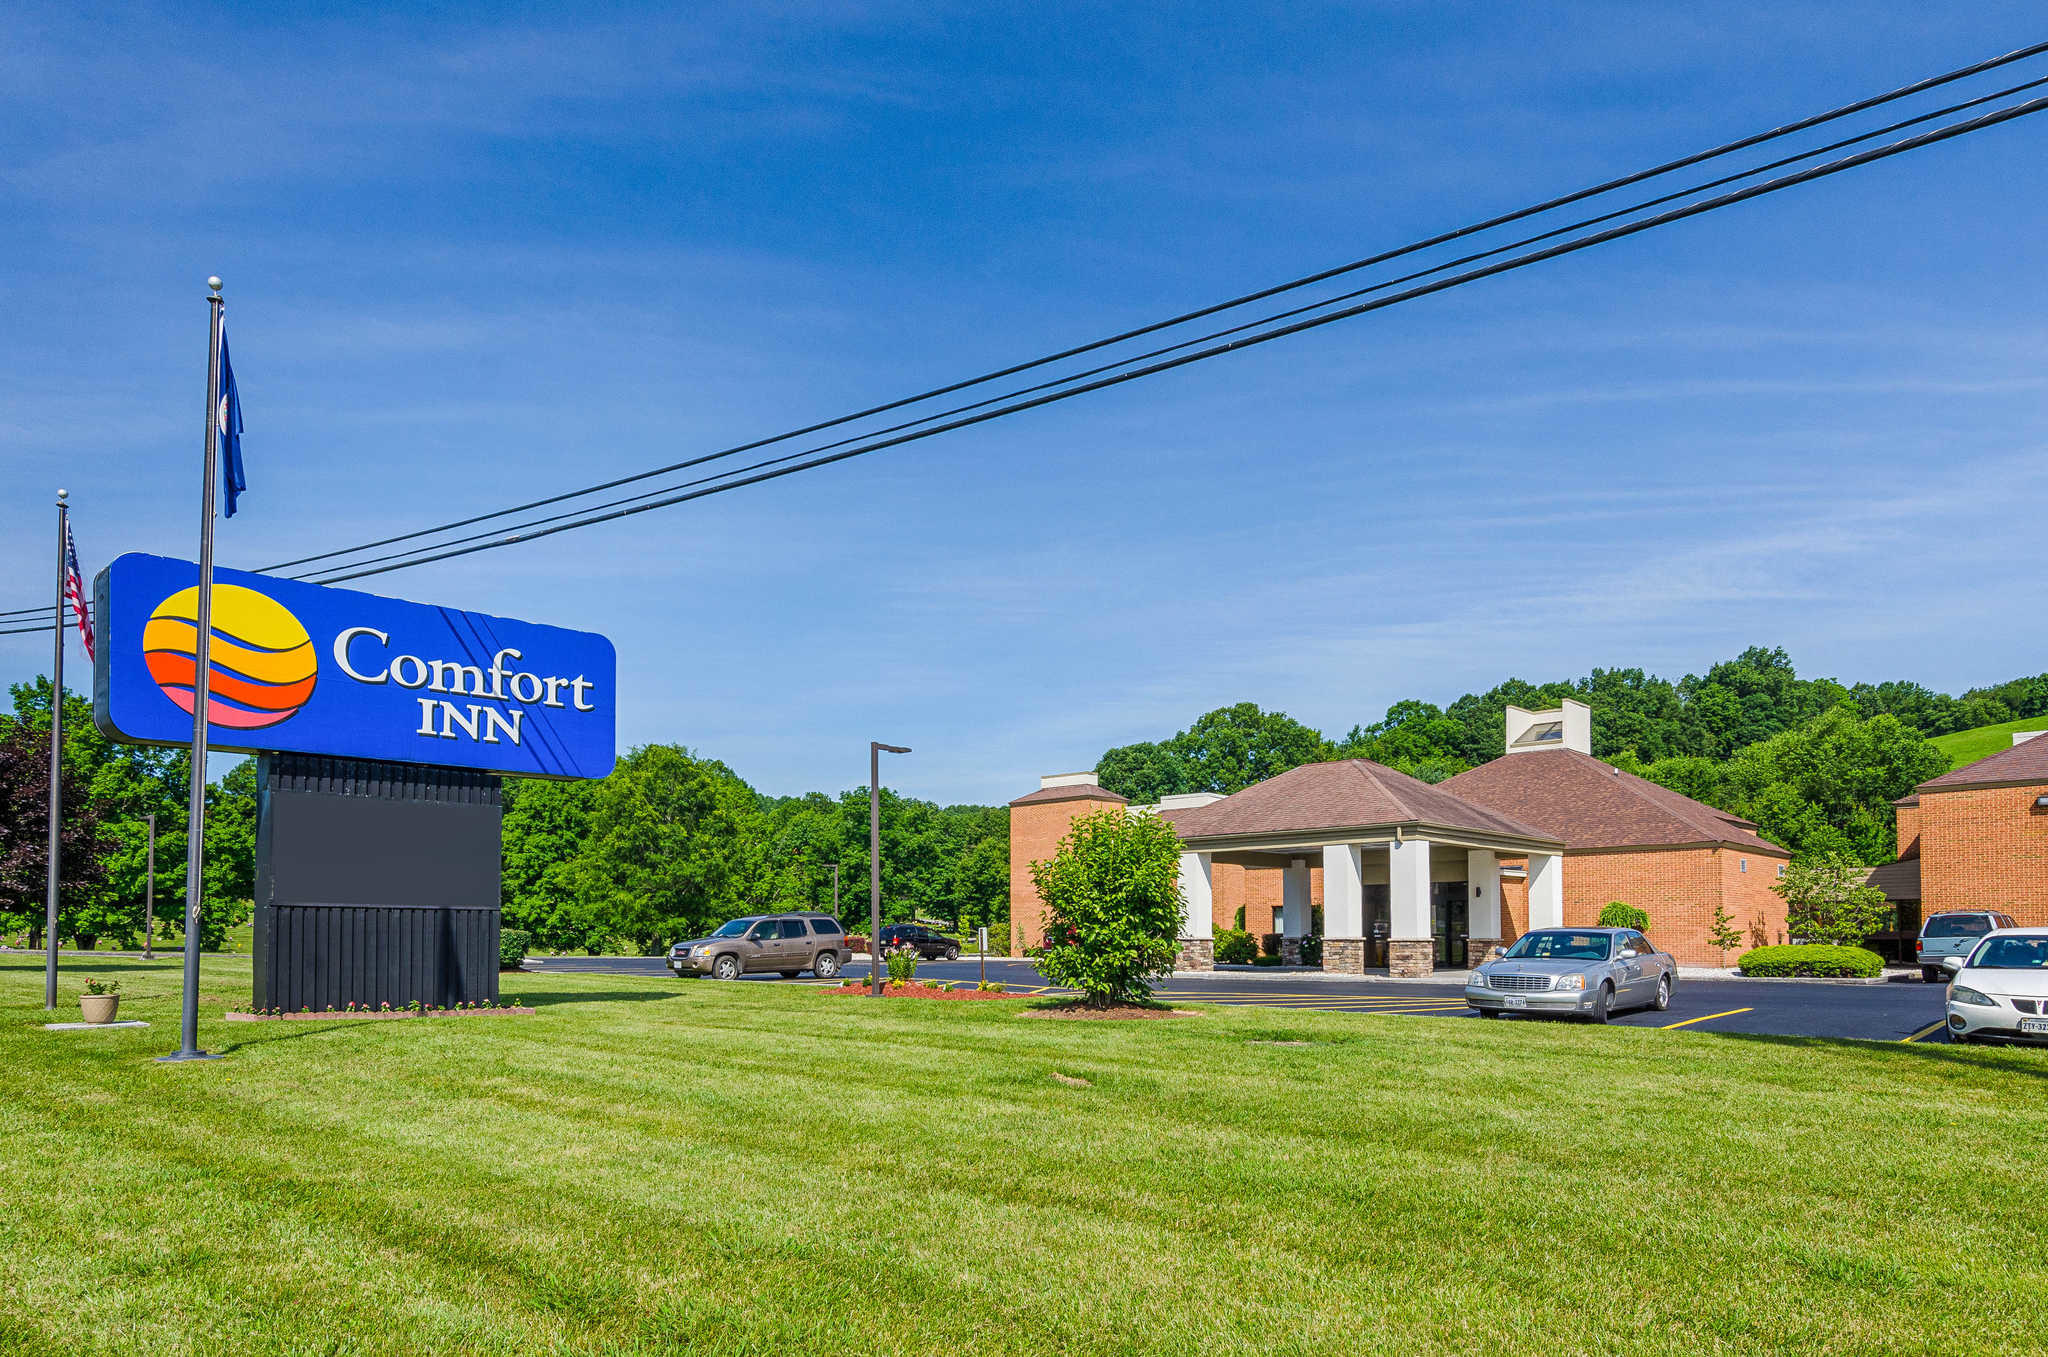 Comfort Inn Bluefield Virginia Va Localdatabase Com